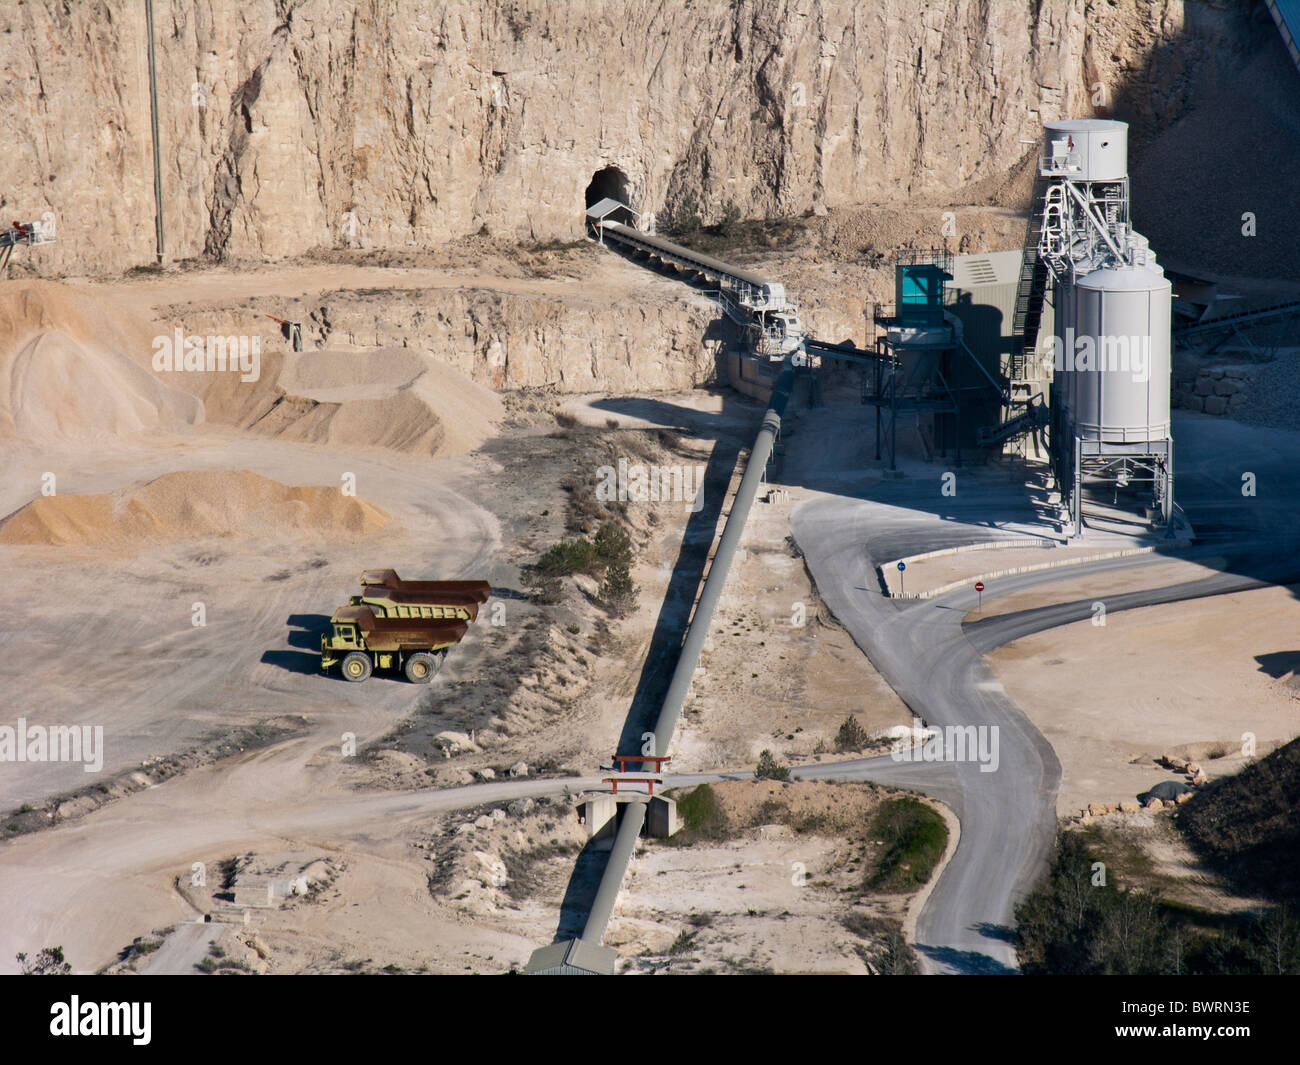 Trucks and buildings at a stone quarry, Provence, France - Stock Image